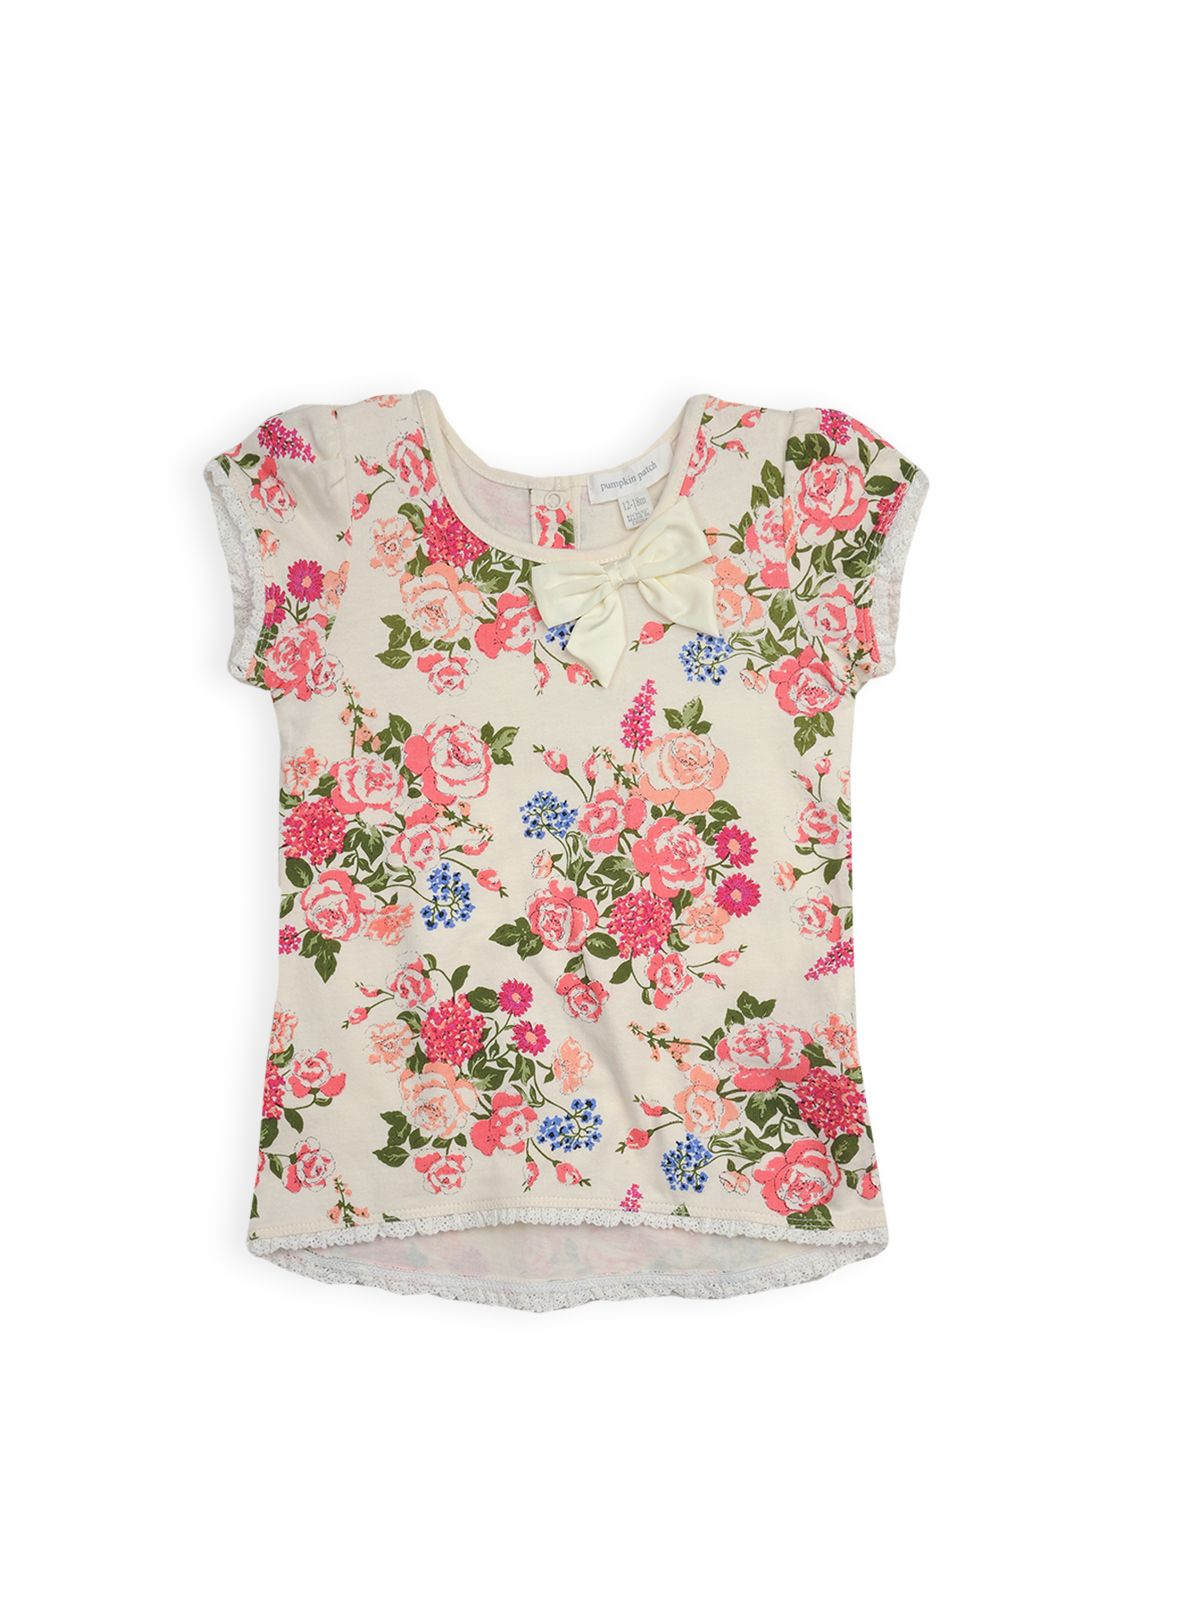 Girls vintage floral top